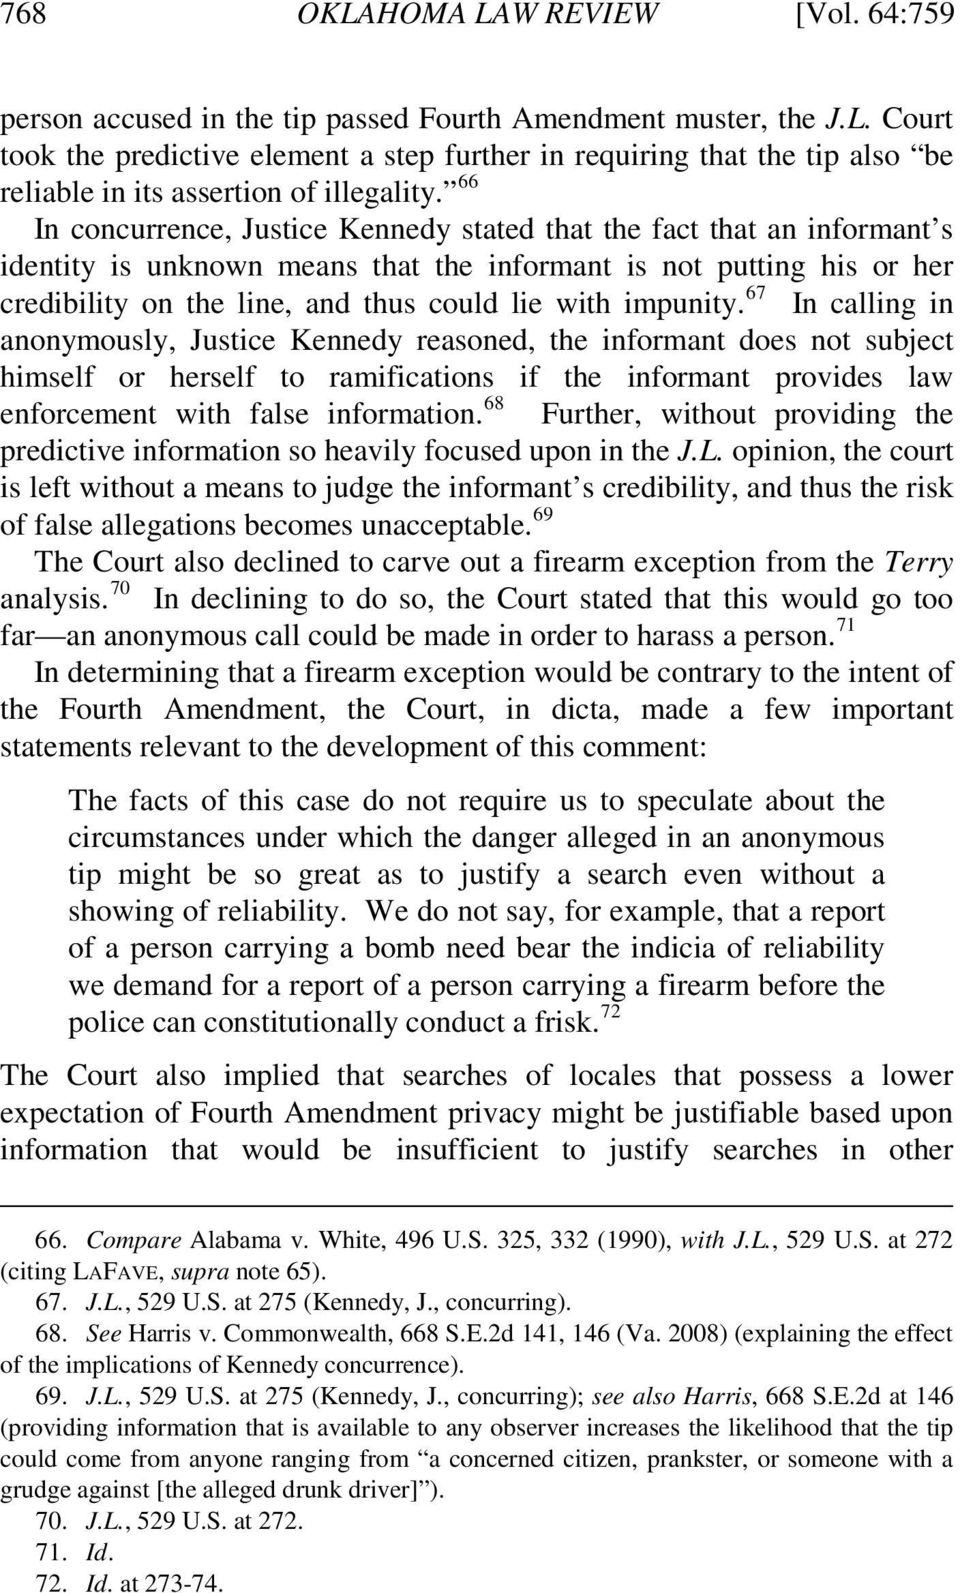 impunity. 67 In calling in anonymously, Justice Kennedy reasoned, the informant does not subject himself or herself to ramifications if the informant provides law enforcement with false information.